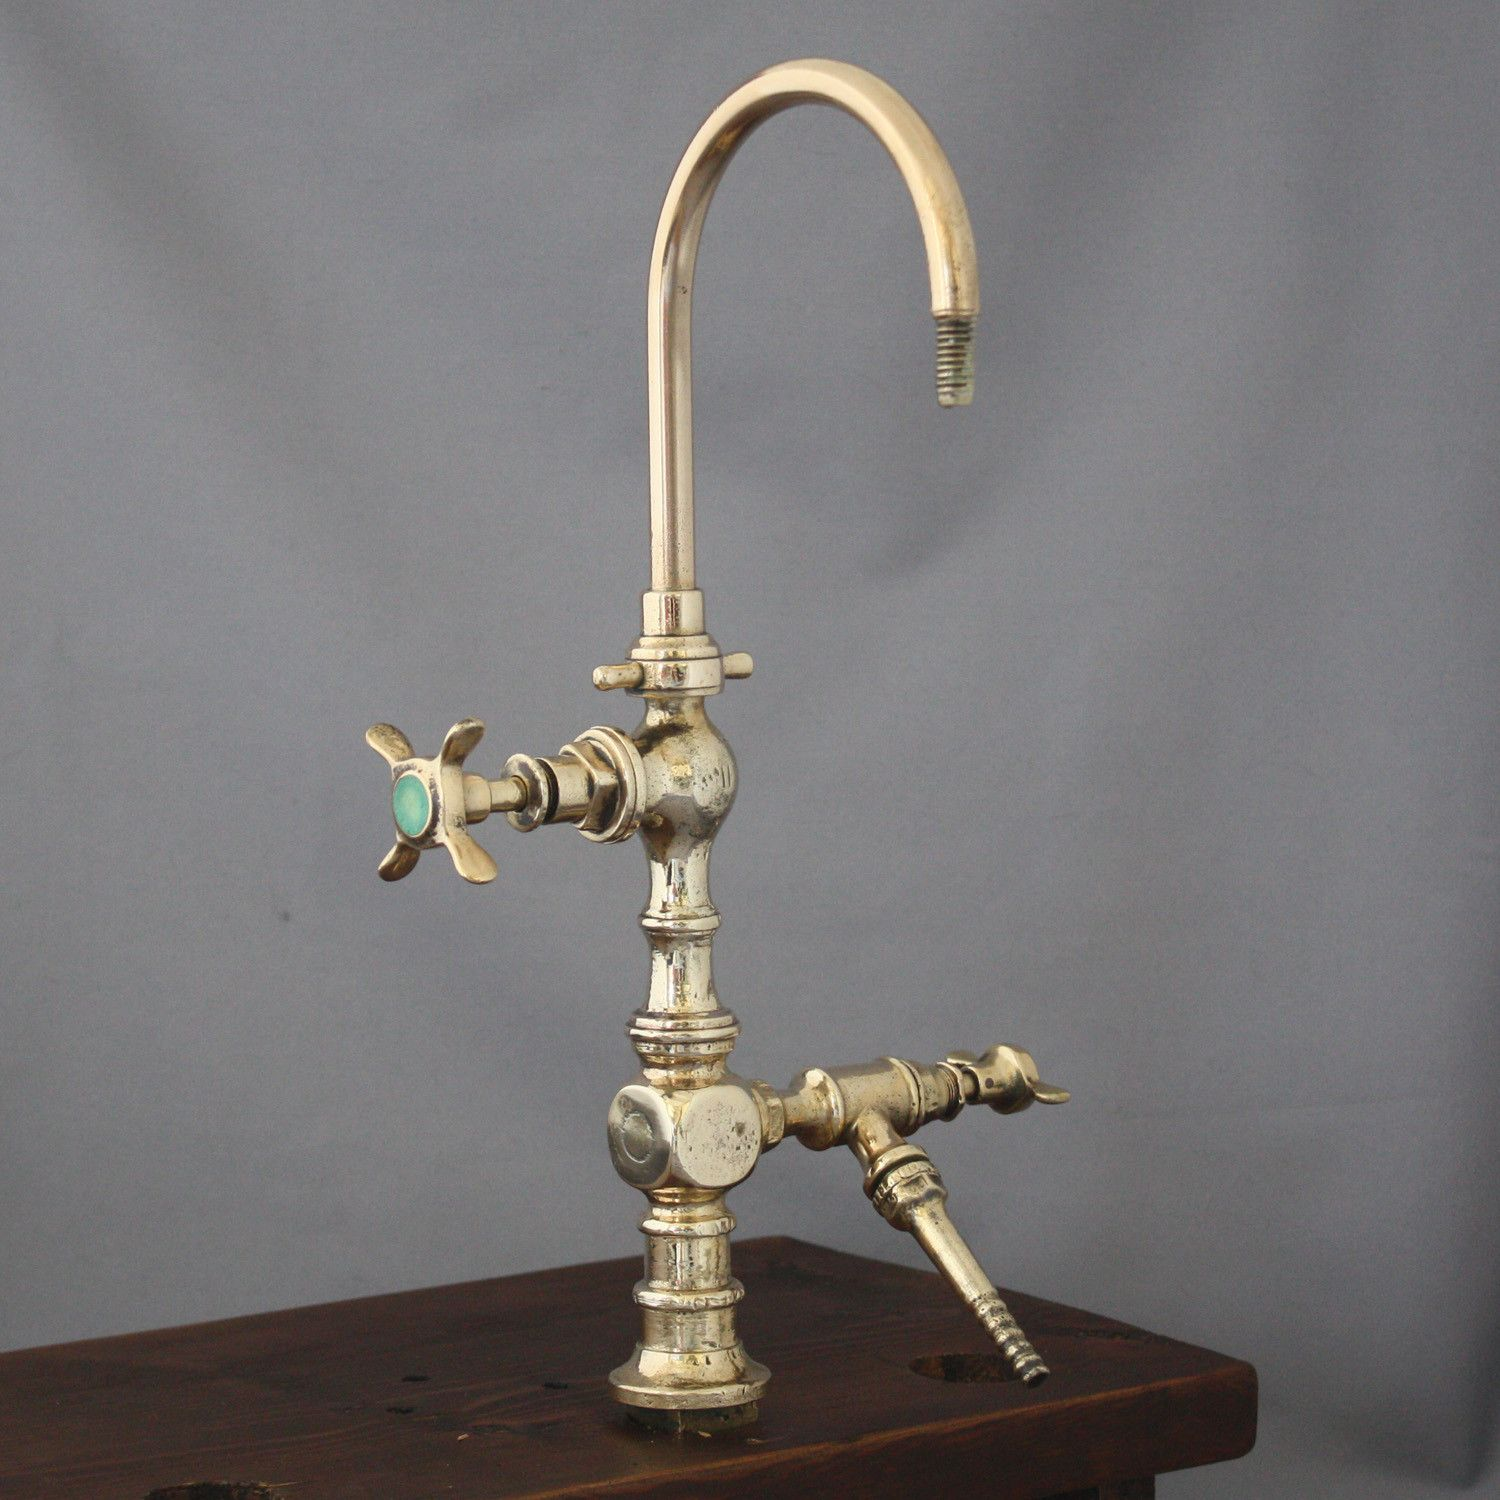 Image Gallery Website Refurbished Art Deco and vintage taps for basins baths and kitchens